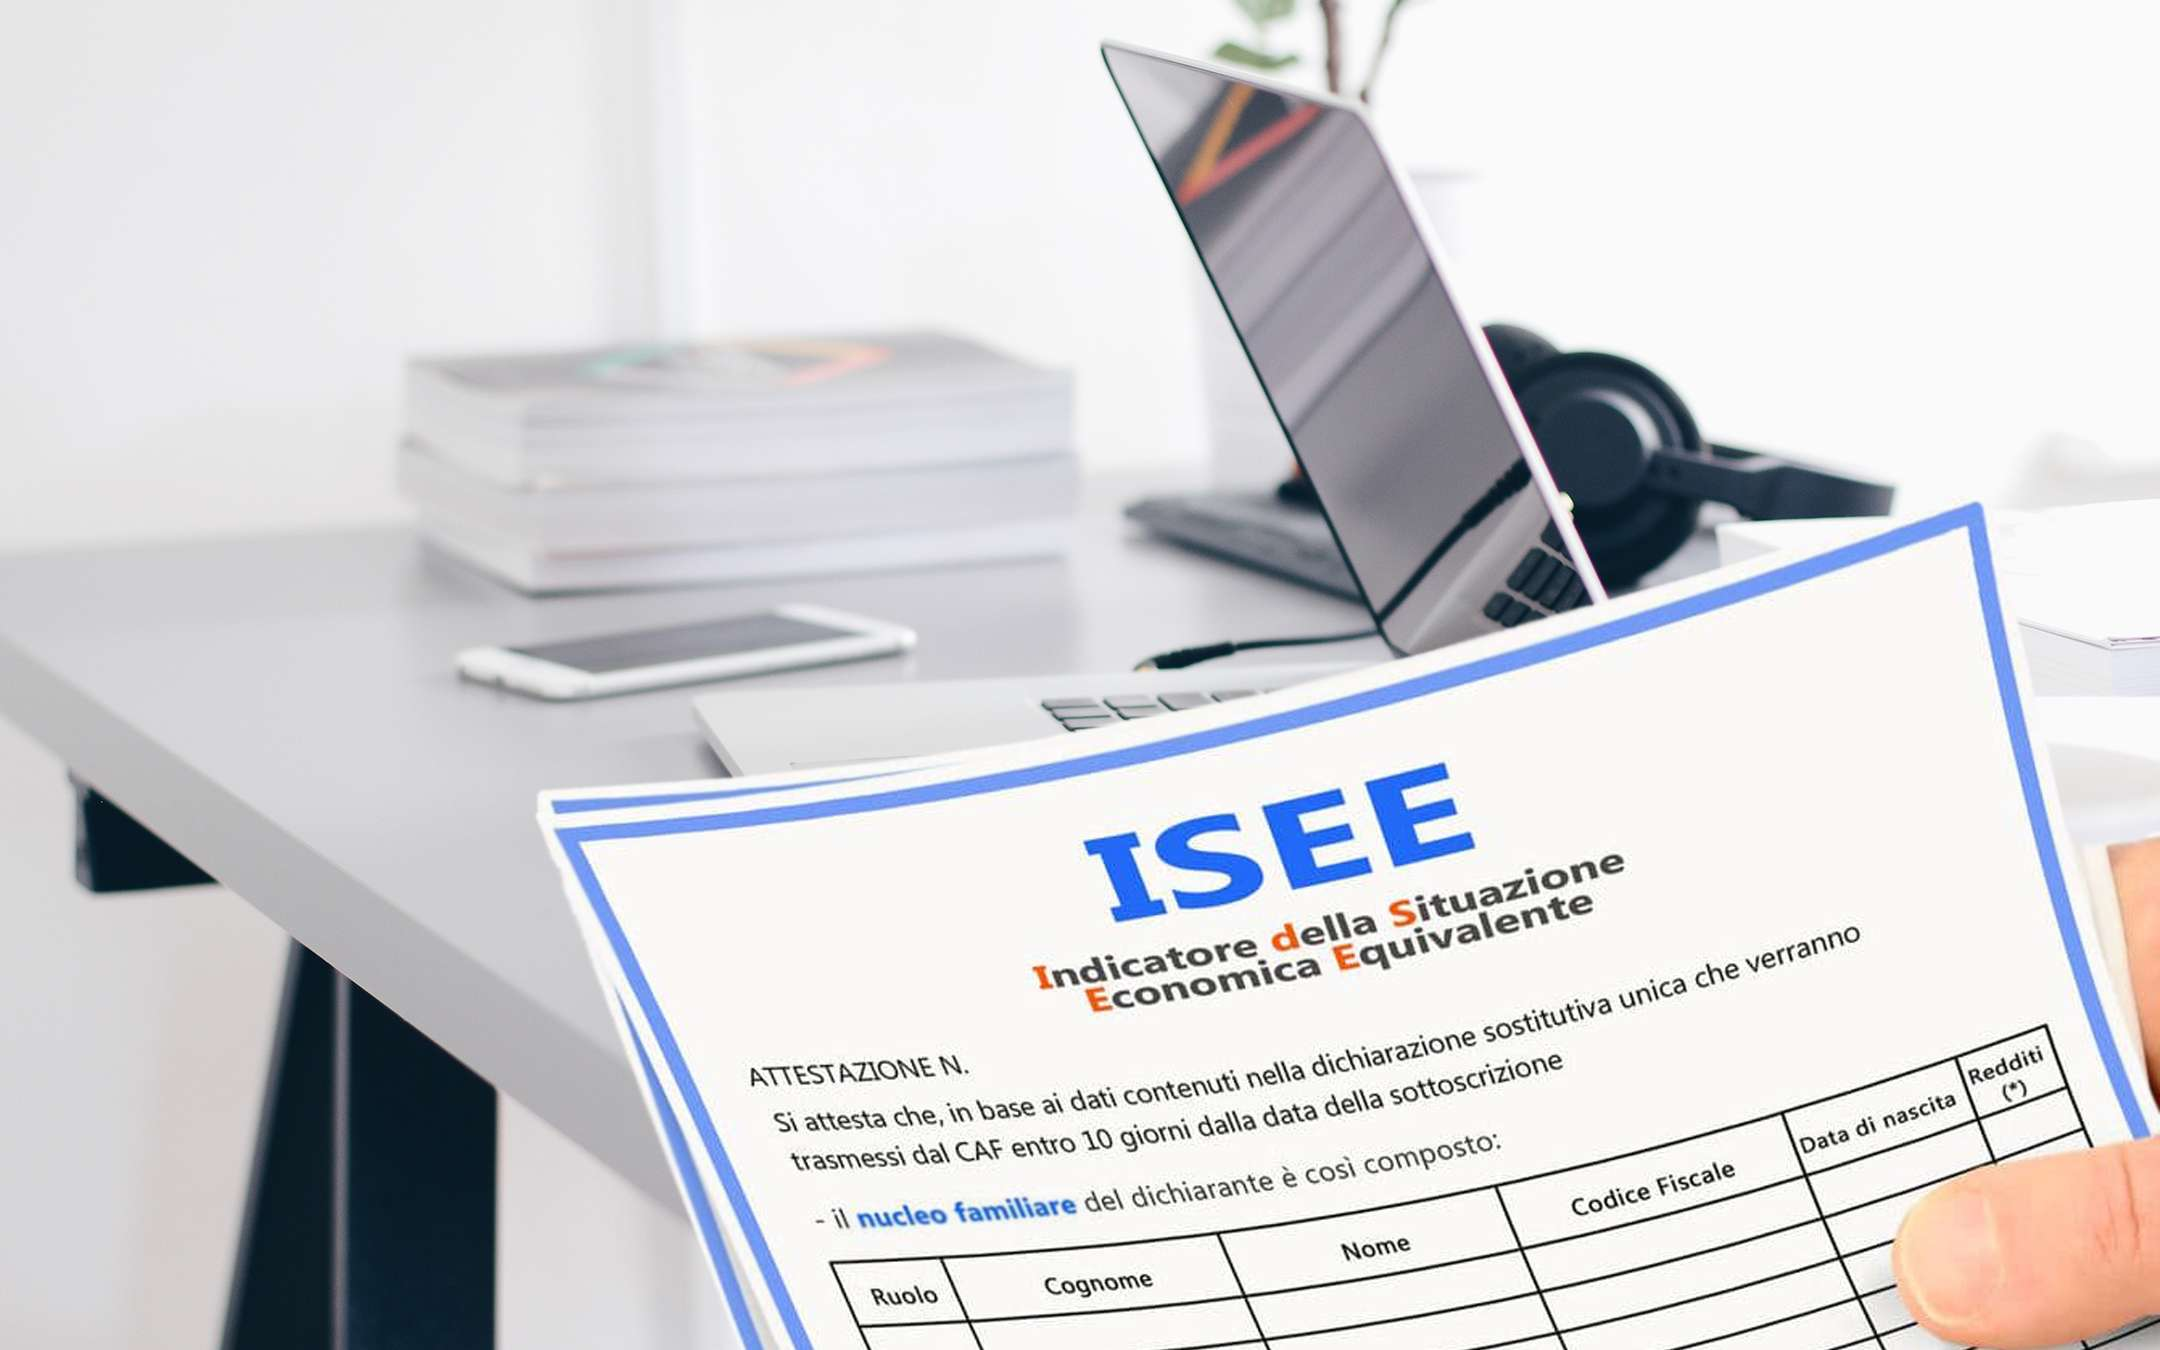 ISEE INPS online 2020: how to do it, documents and calculation guide